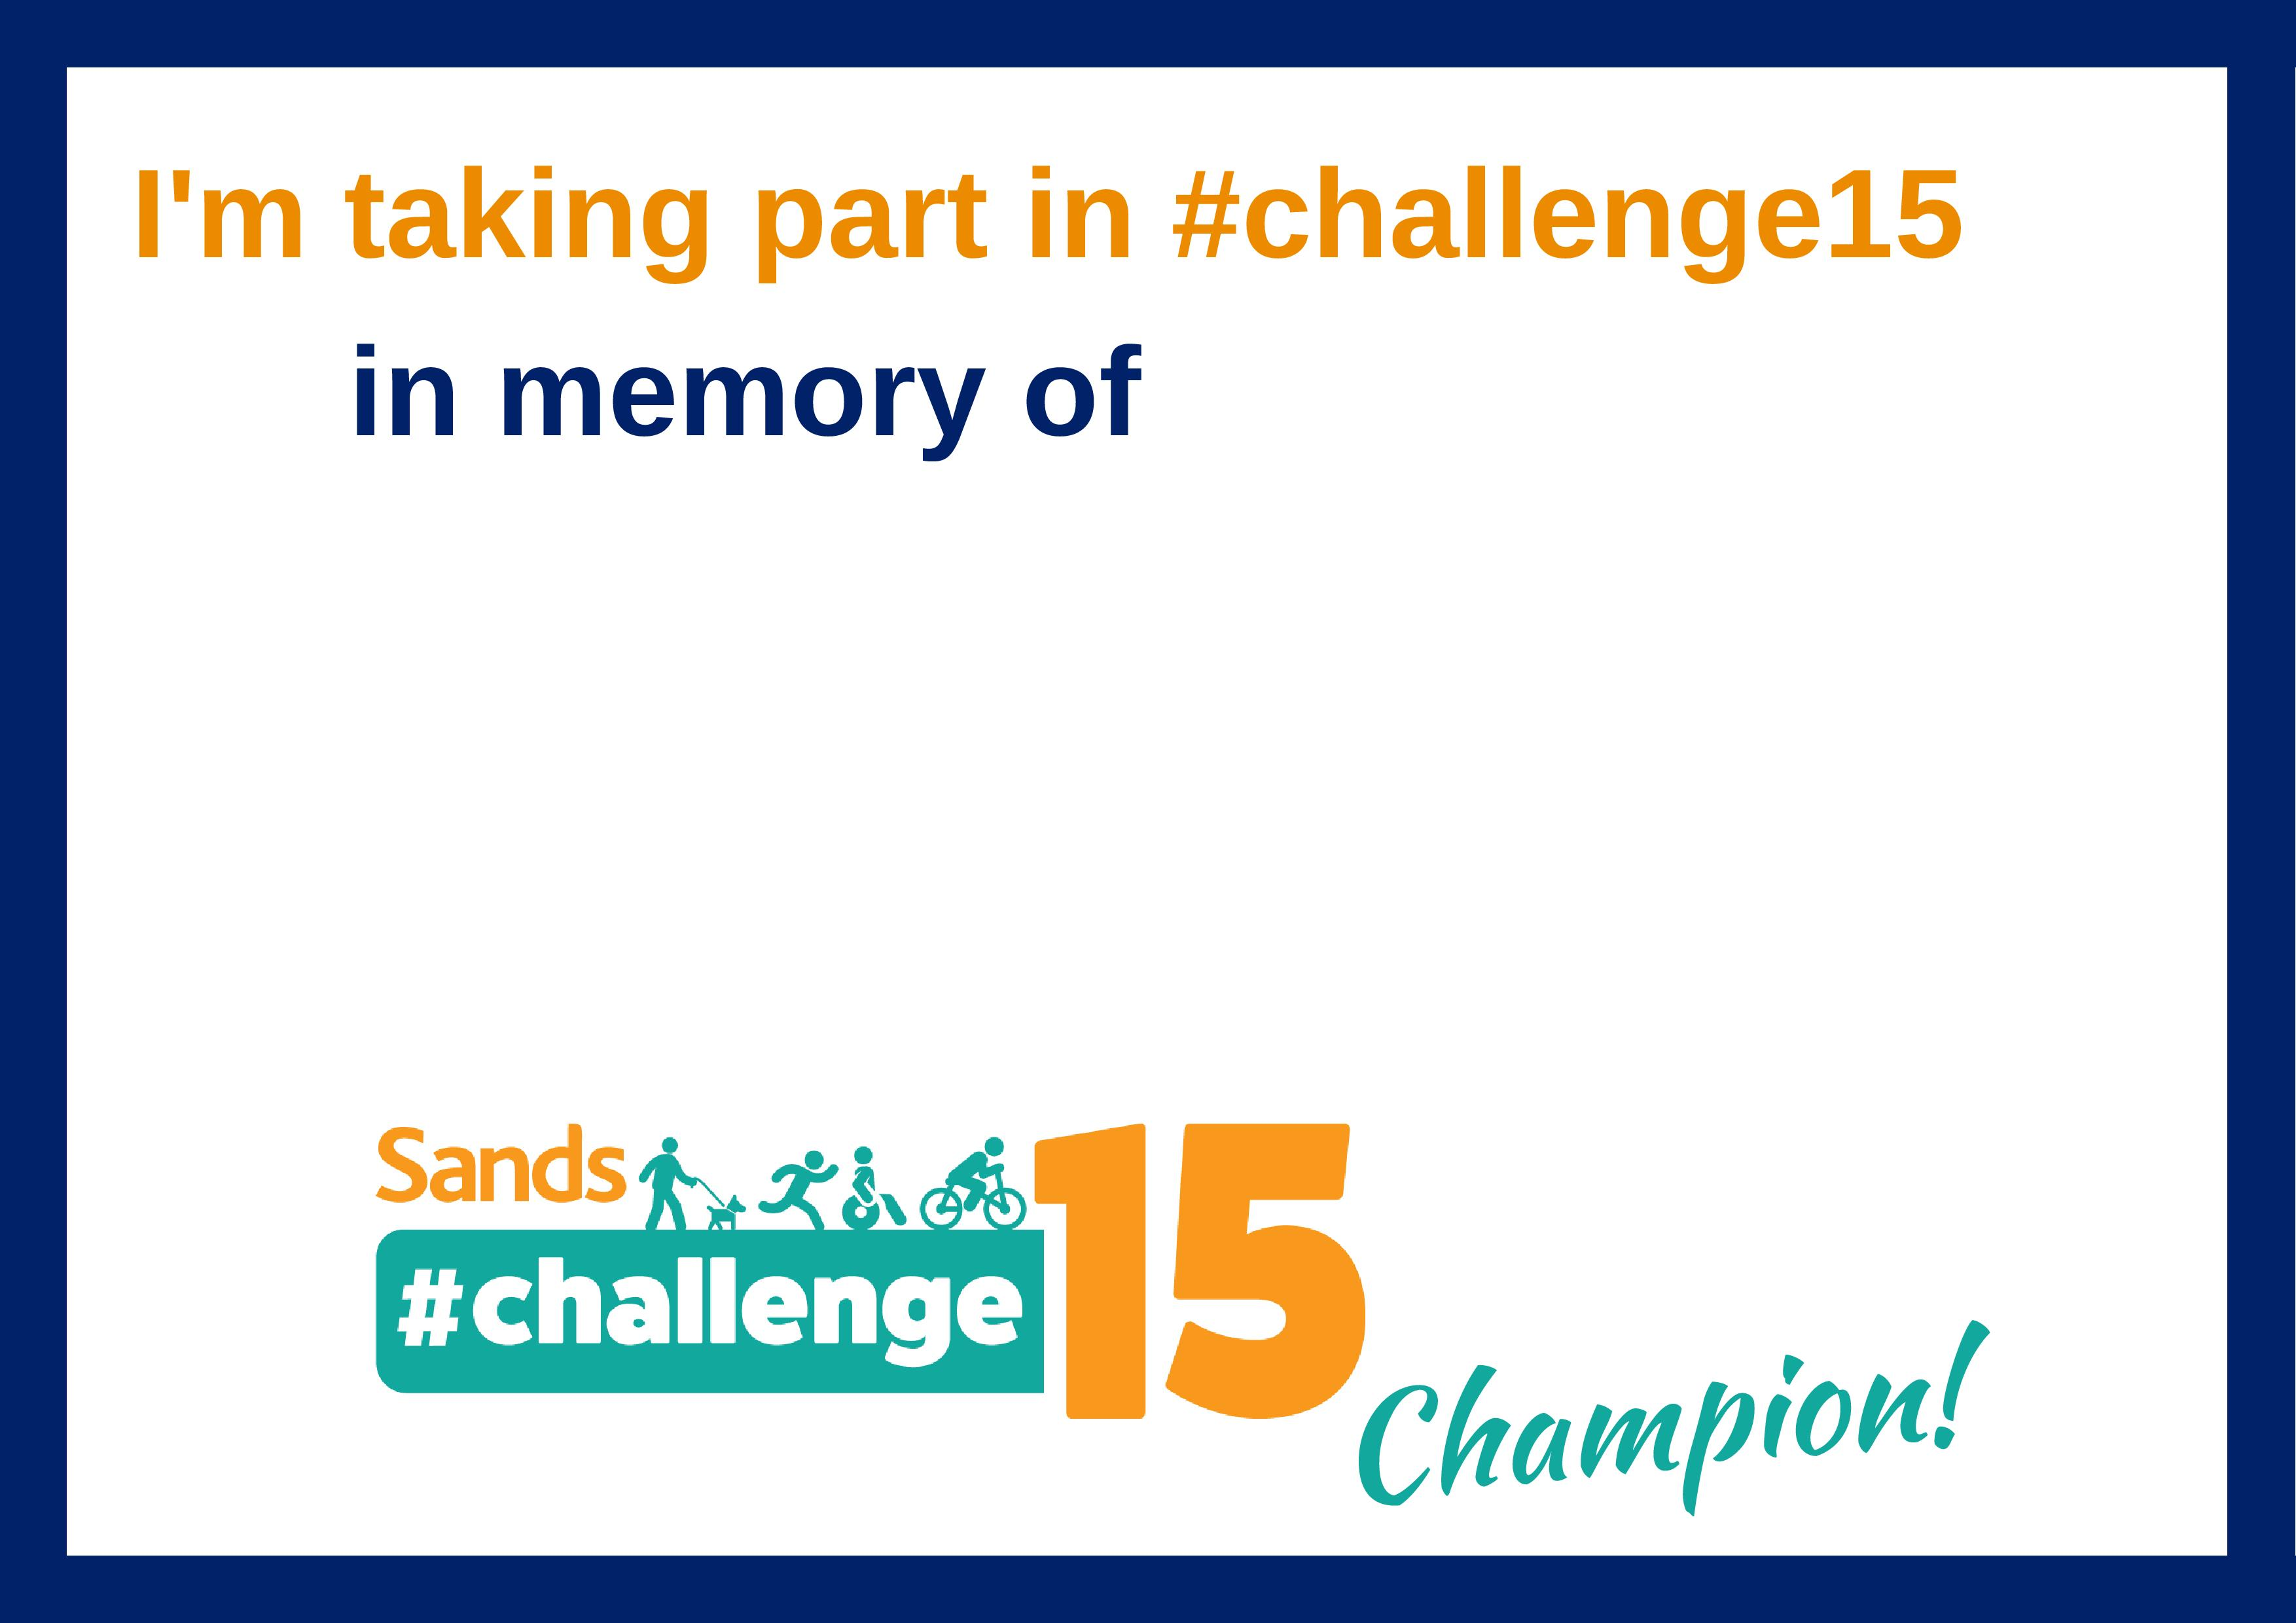 #challenge15, in memory of